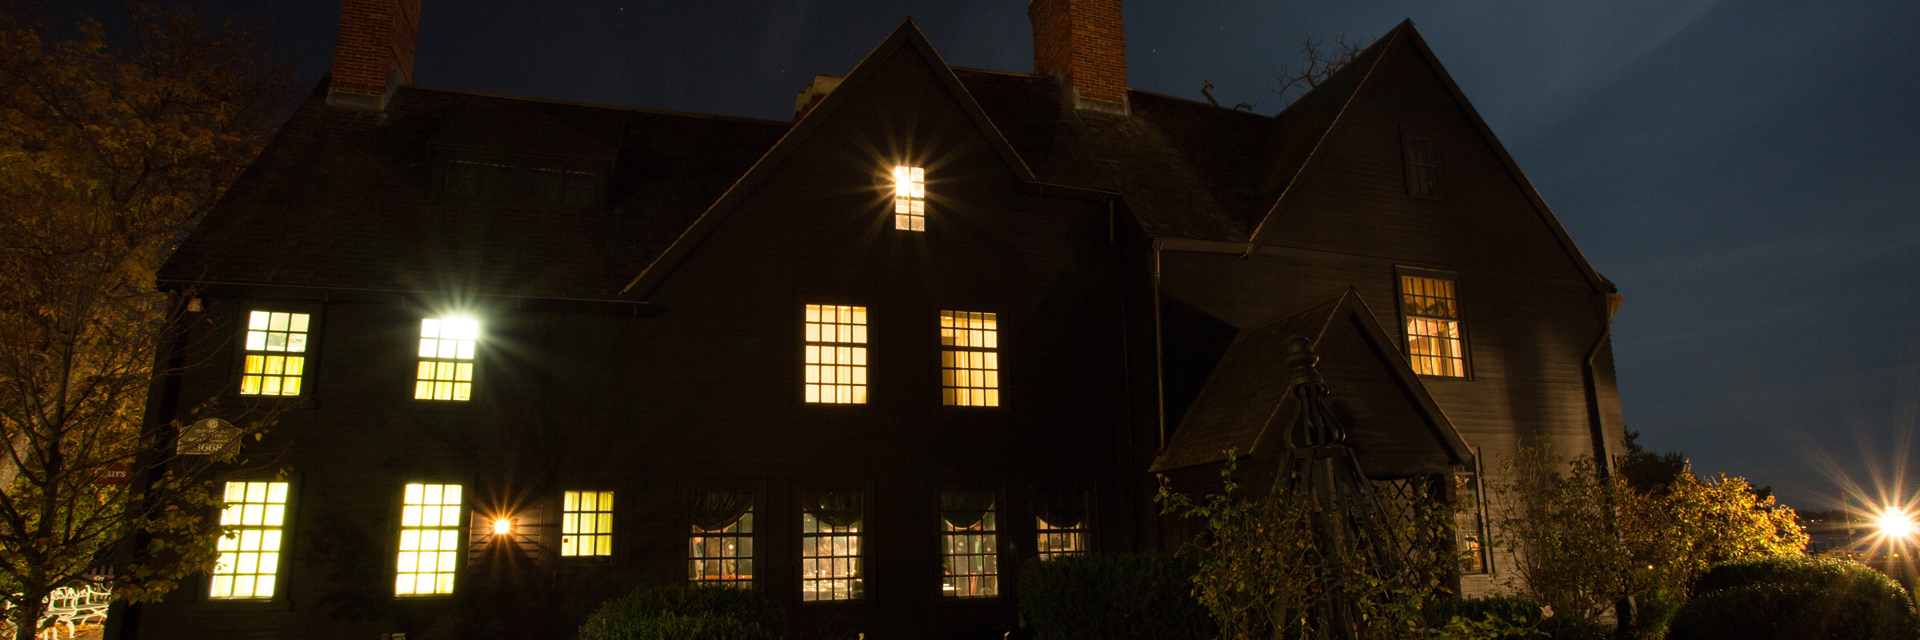 House of the Seven Gables — Salem MA — credit Jared Charney | More Salem Haunted Happenings